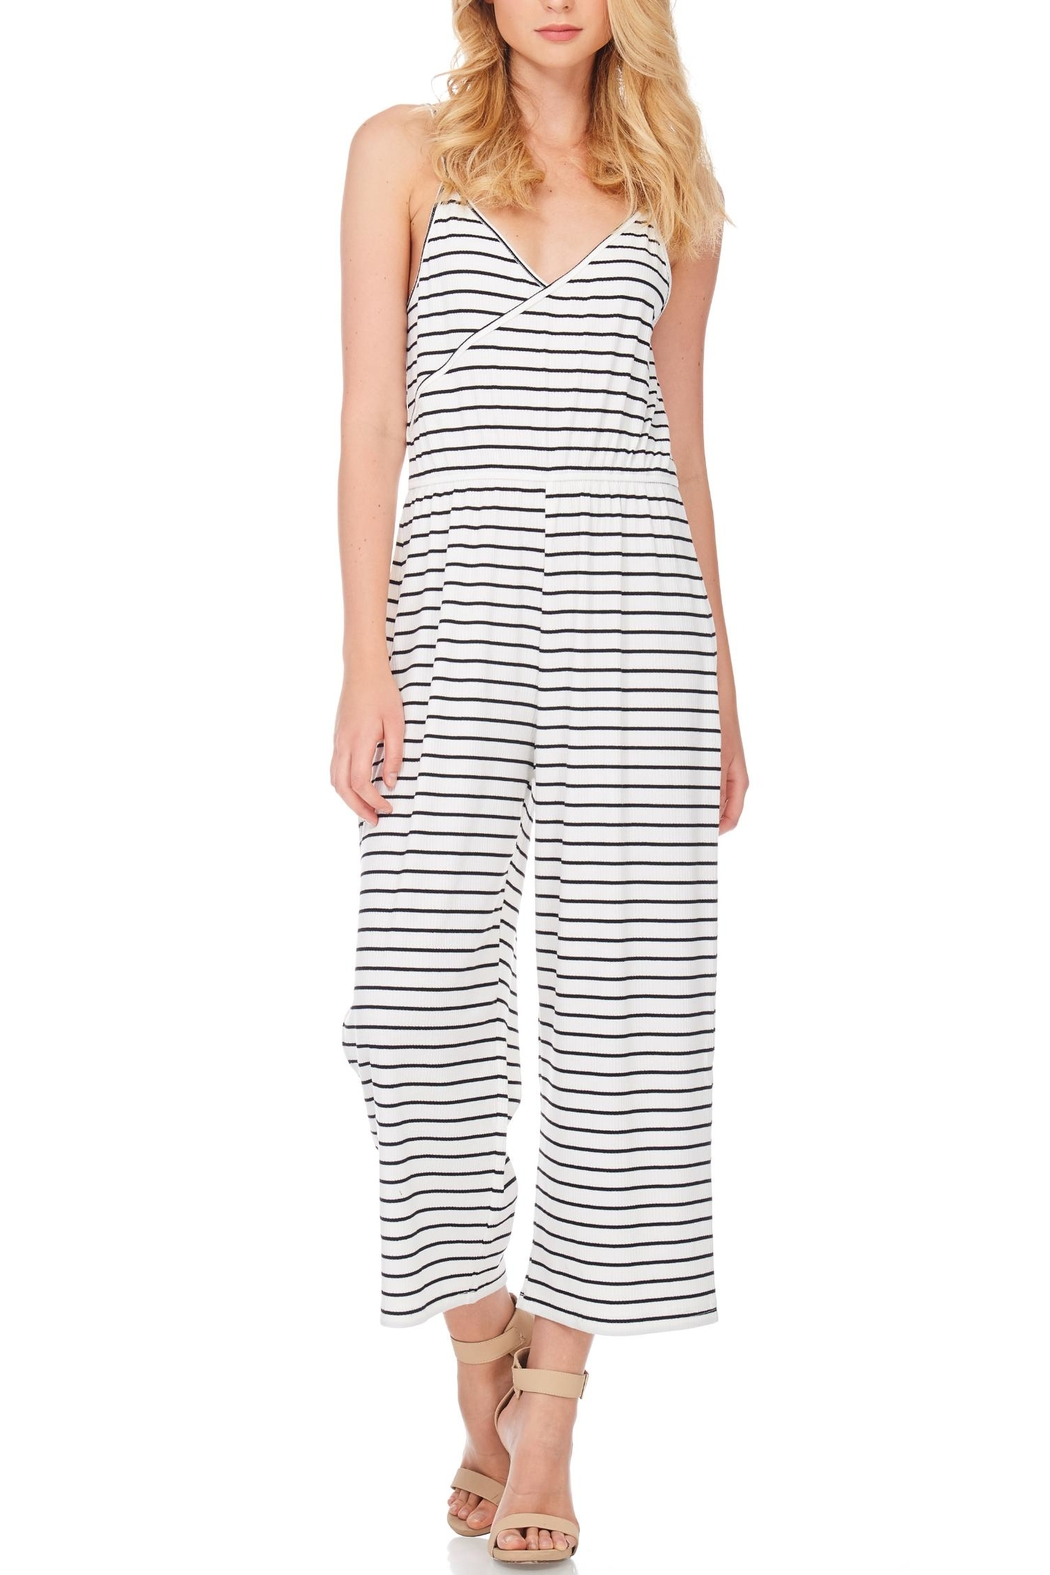 Anama Nautical Striped Jumpsuit - Front Full Image